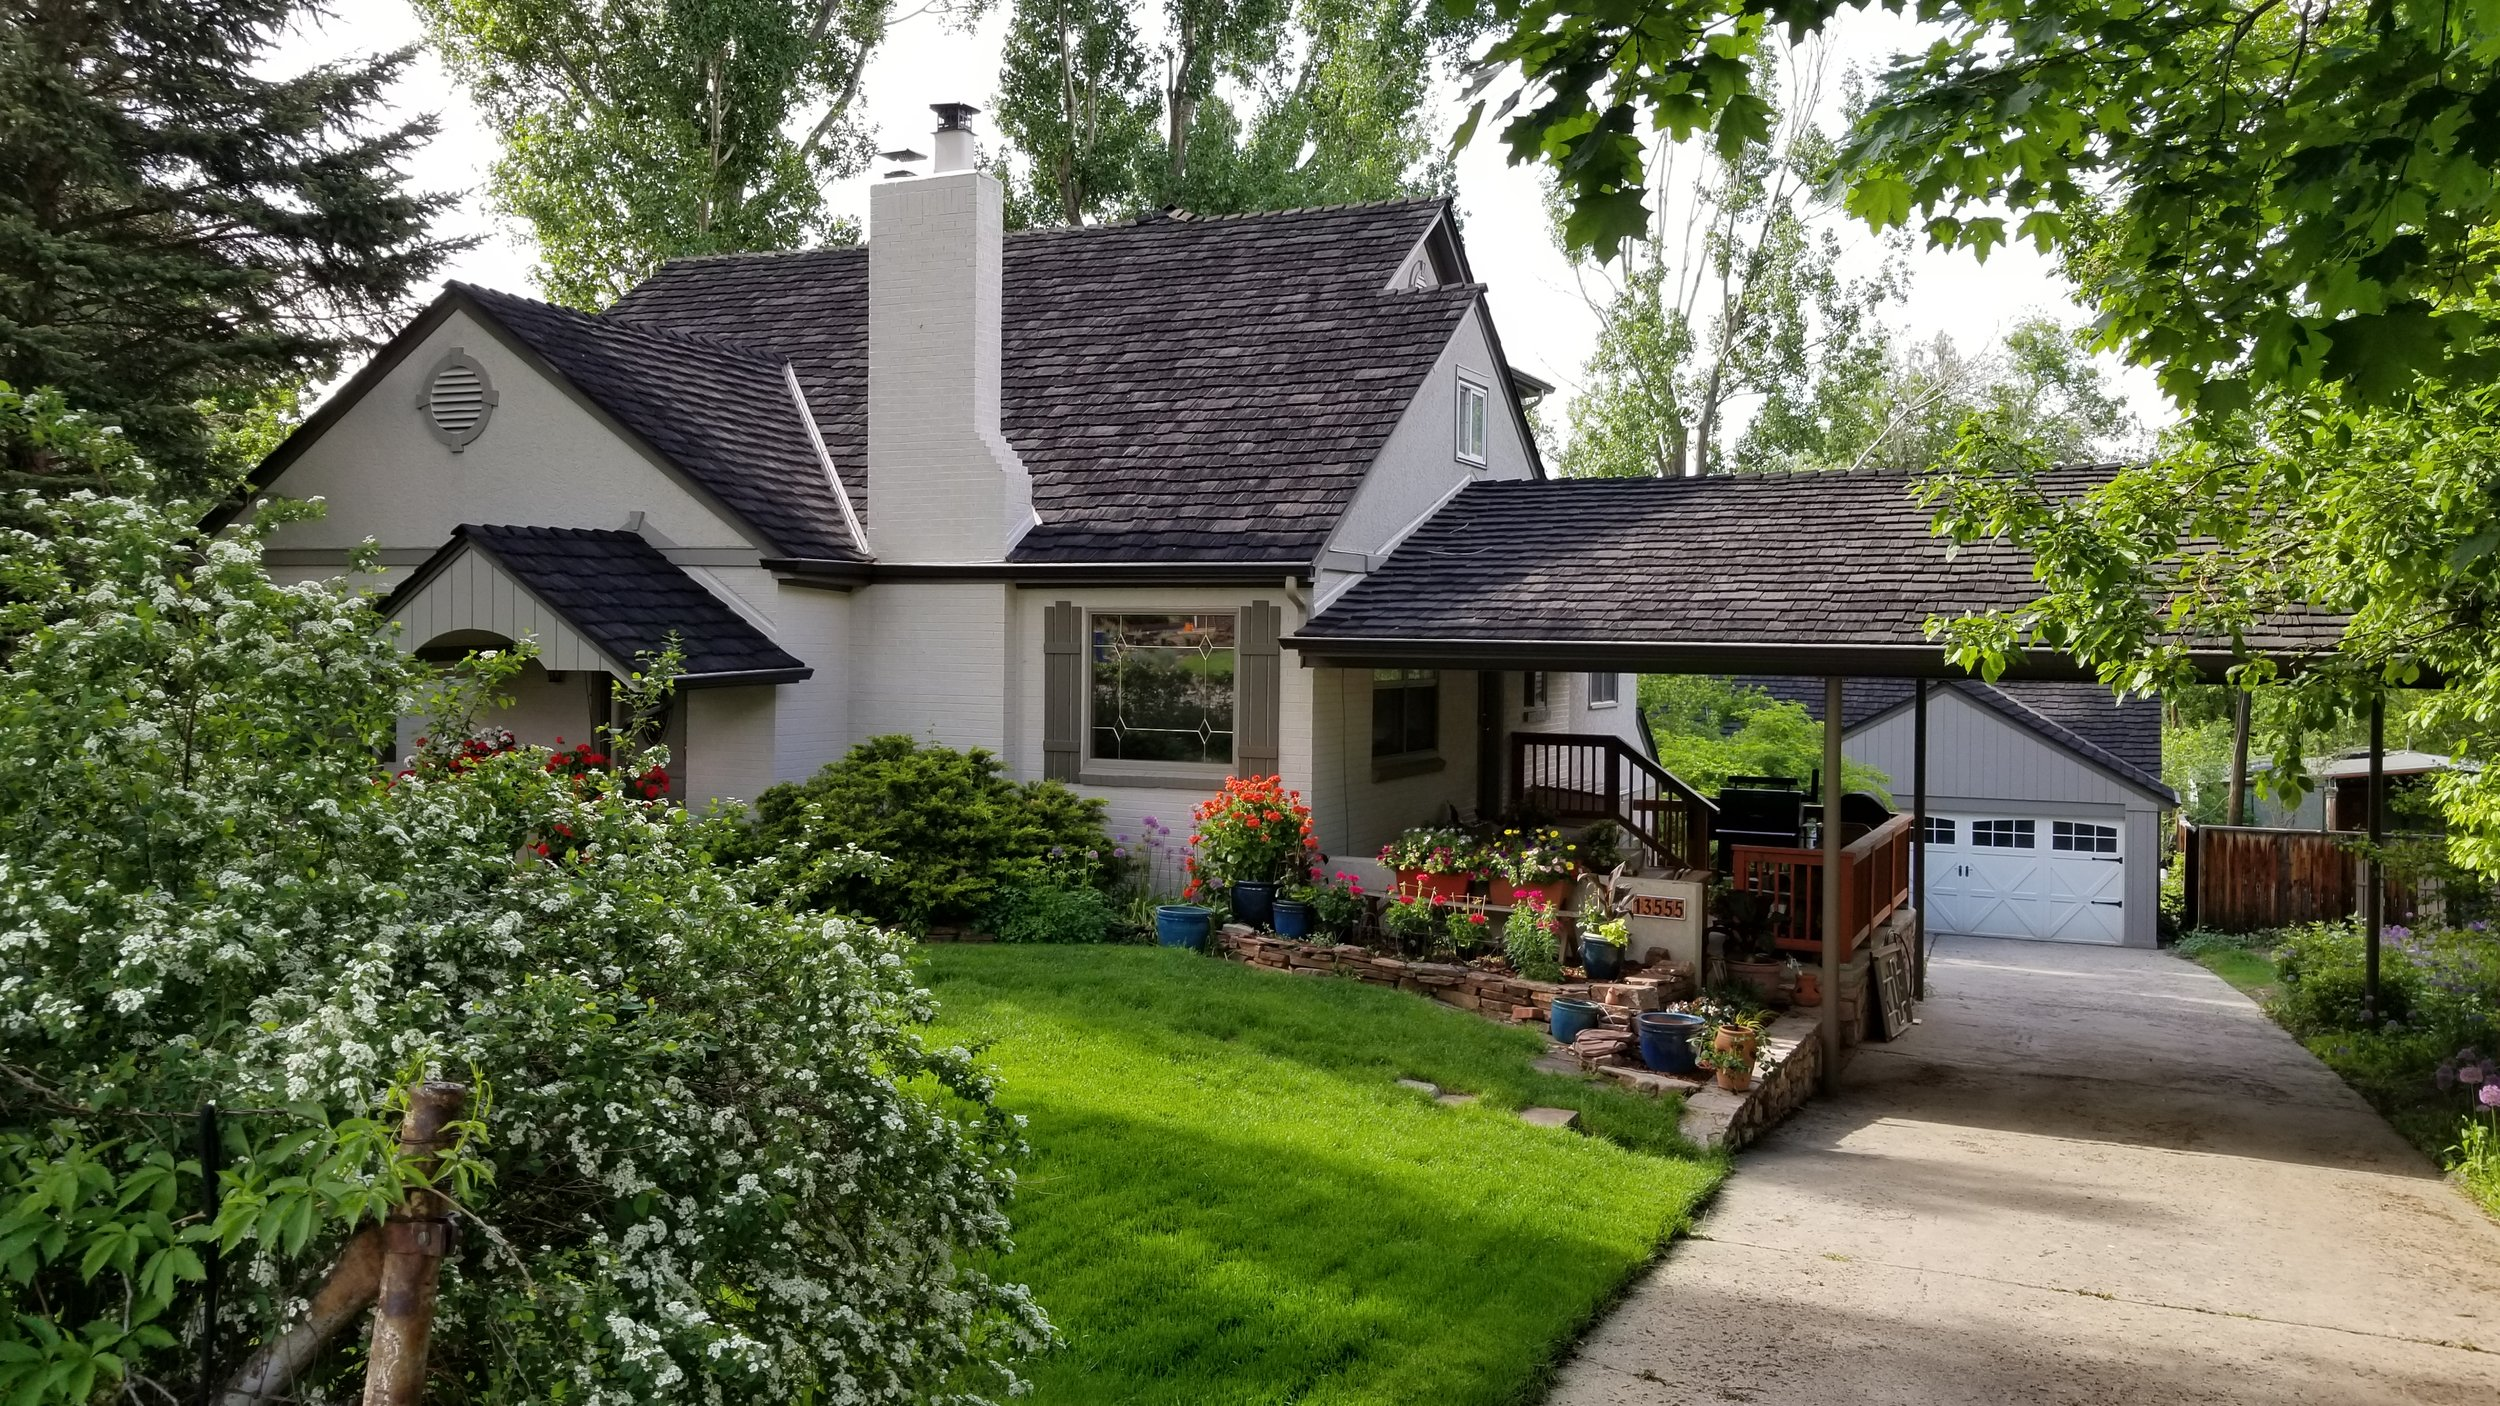 CeDUR Shiloh-Michaels Res-beauitful-new-syntethic-polymer-composite-roofing-residentia-contractor-denver-colorado.jpg